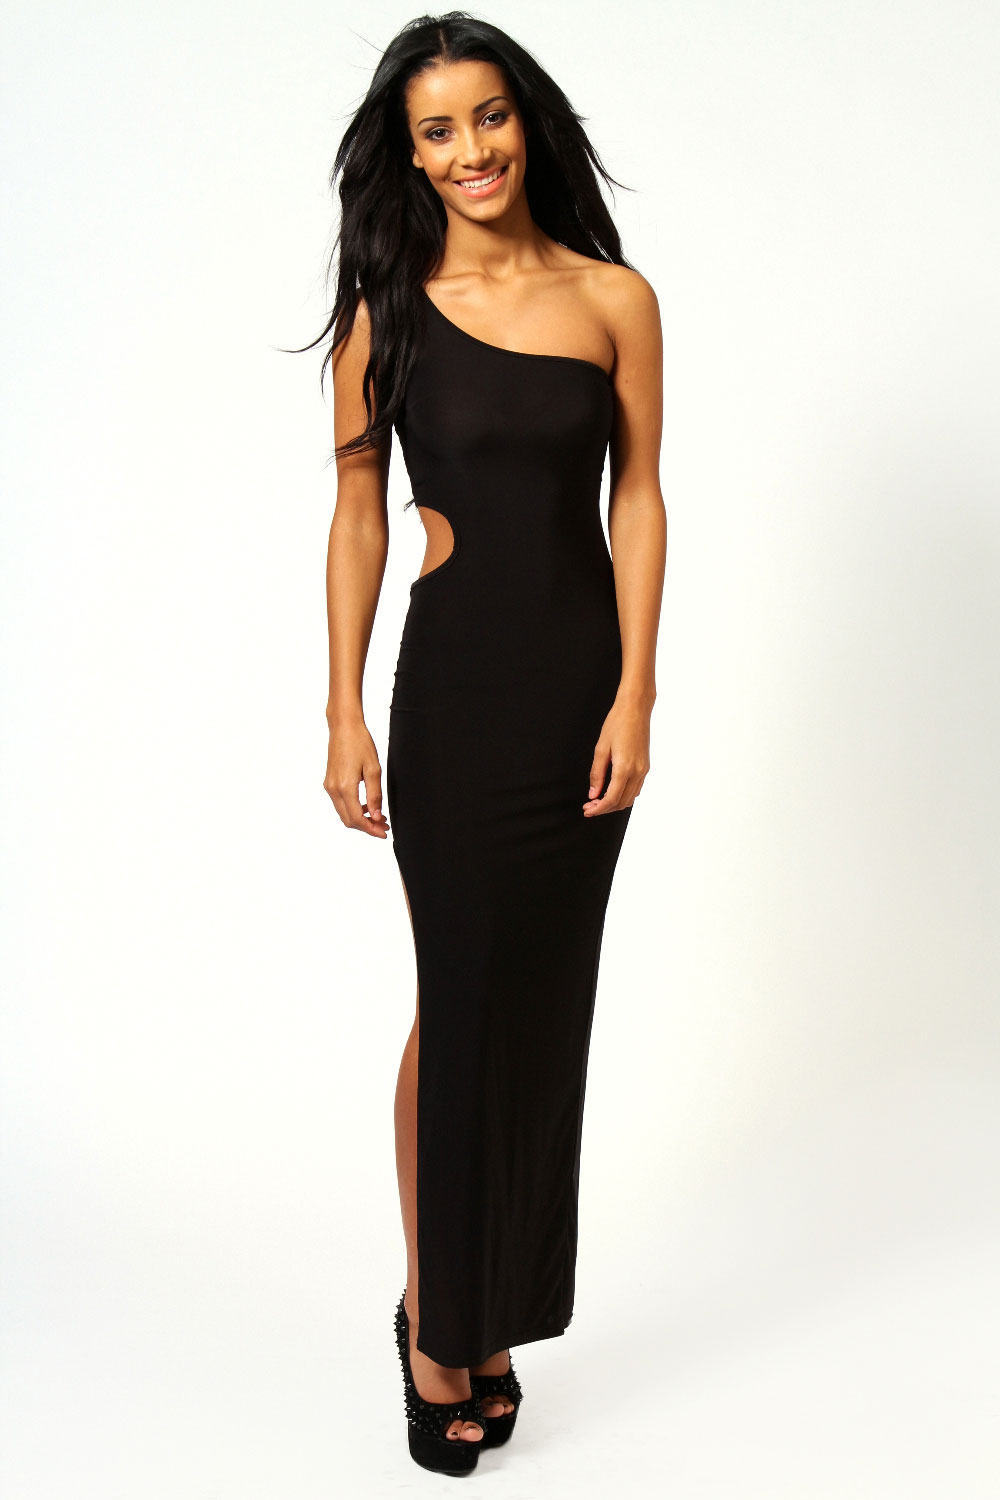 Boohoo-Womens-Ladies-Erin-One-Shoulder-Cut-Out-Waist-Slinky-Maxi-Dress